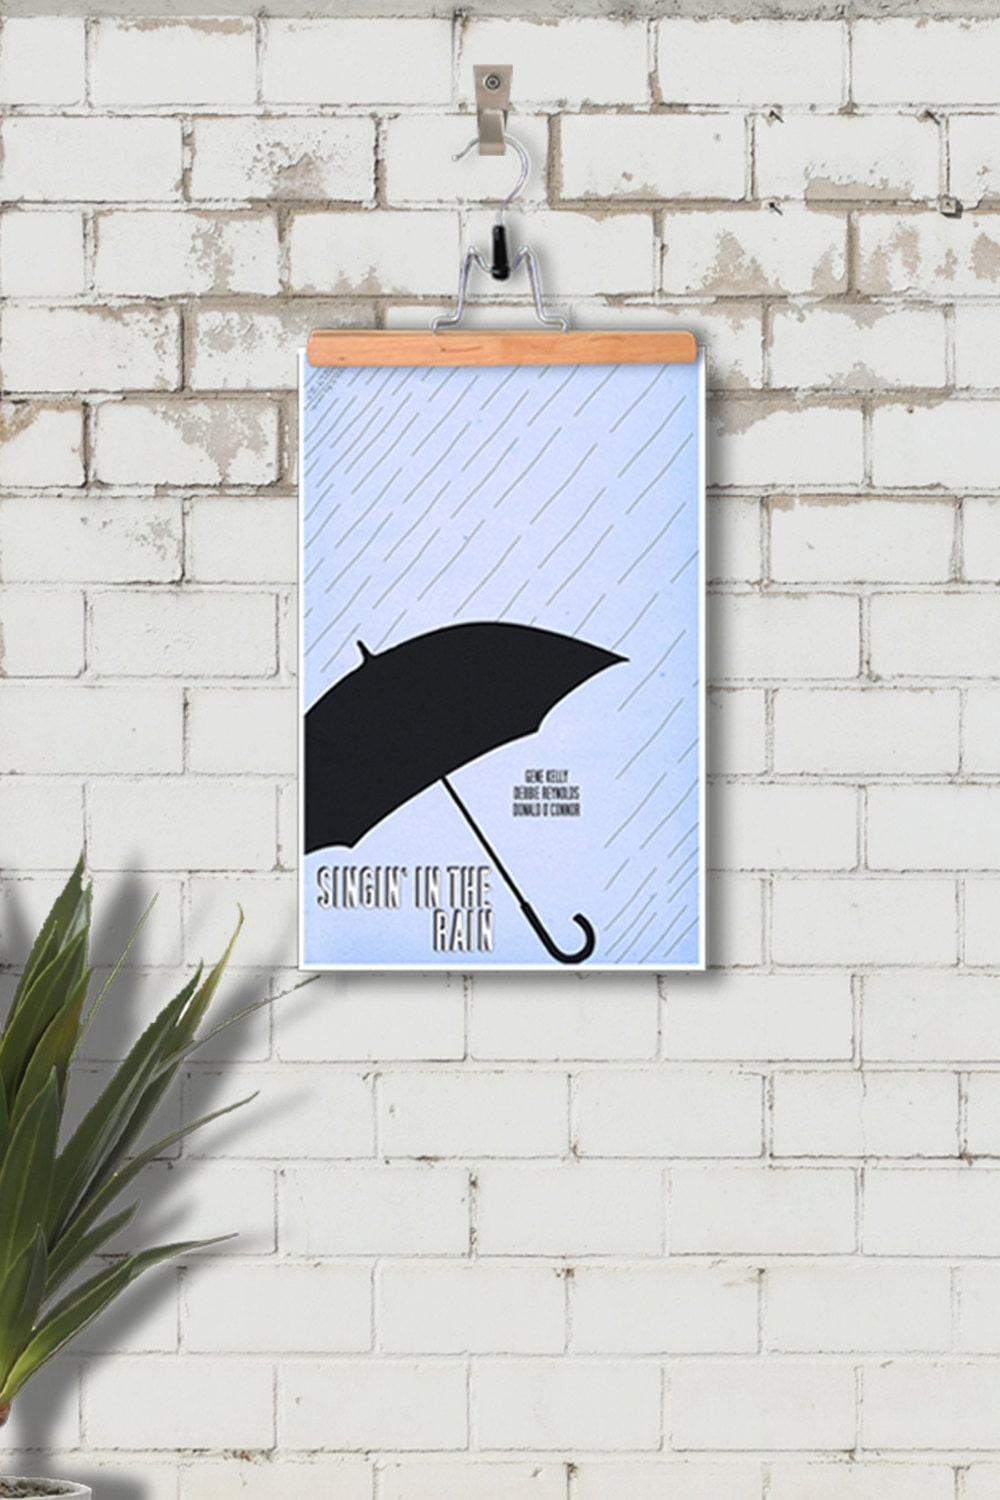 Singin' In The Rain - 12x18 inch Minimalist Poster - Ghoulery